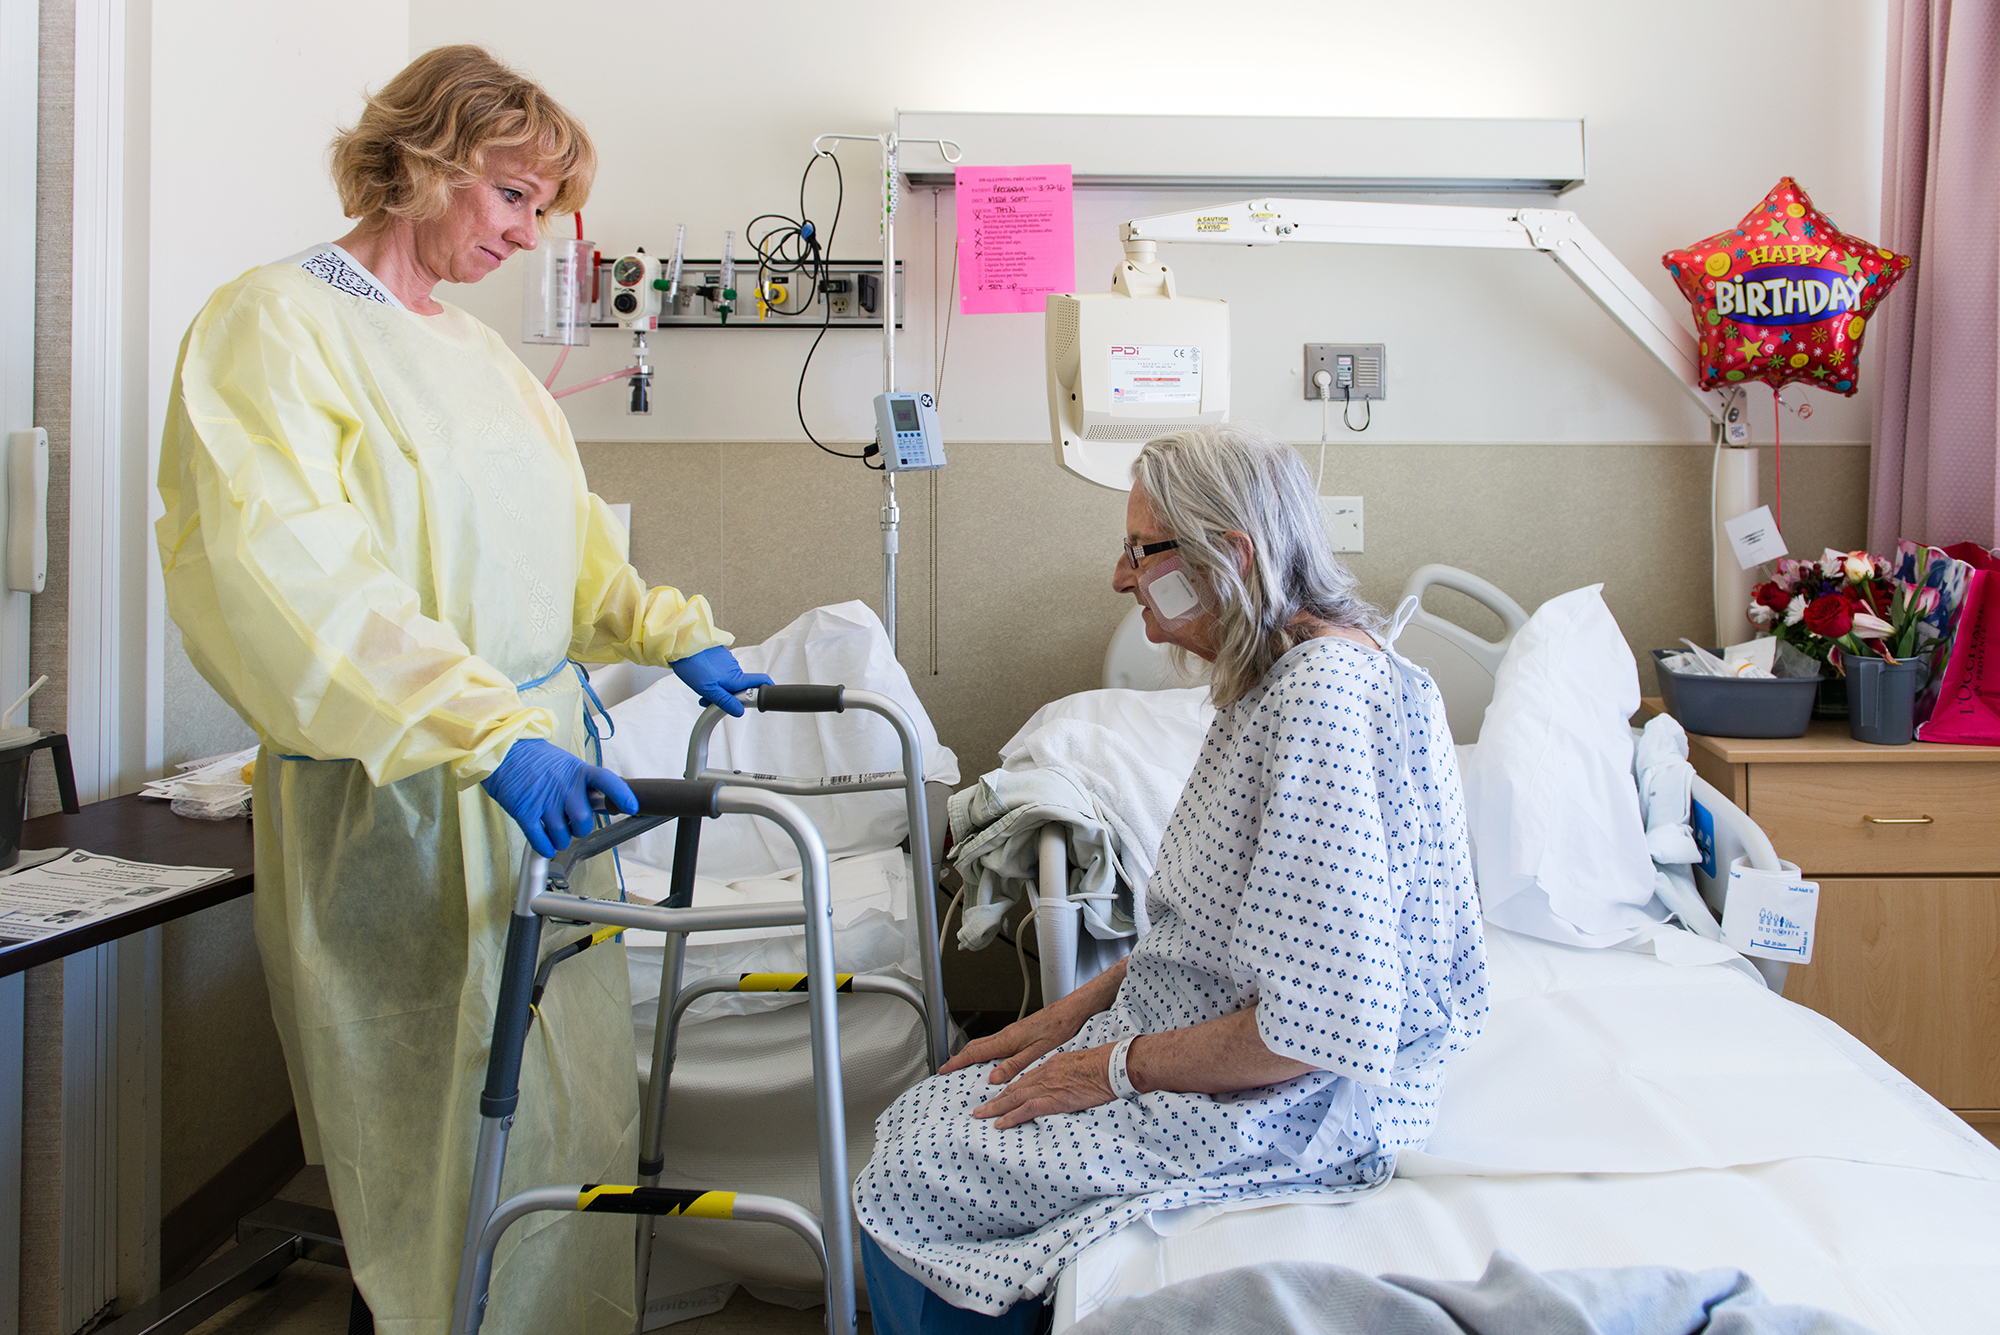 Nurse specialist Annelie Nilsson checks on patient Janet Prochazka, during her stay at the Zuckerberg San Francisco General Hospital, after Prochazka took a bad fall in March.